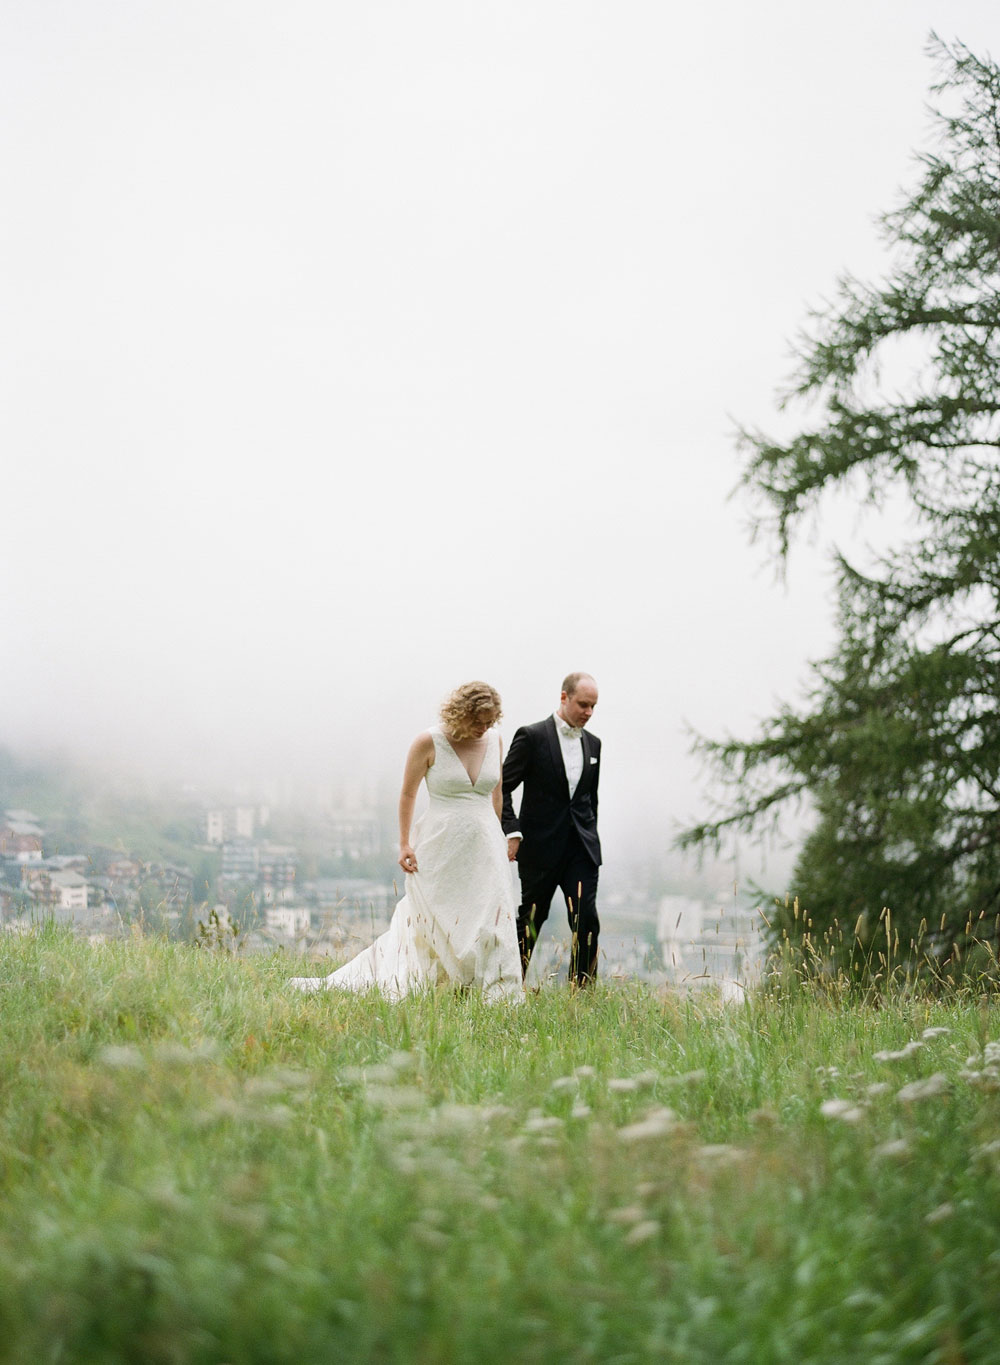 wedding-photographer-zermatt-4.jpg